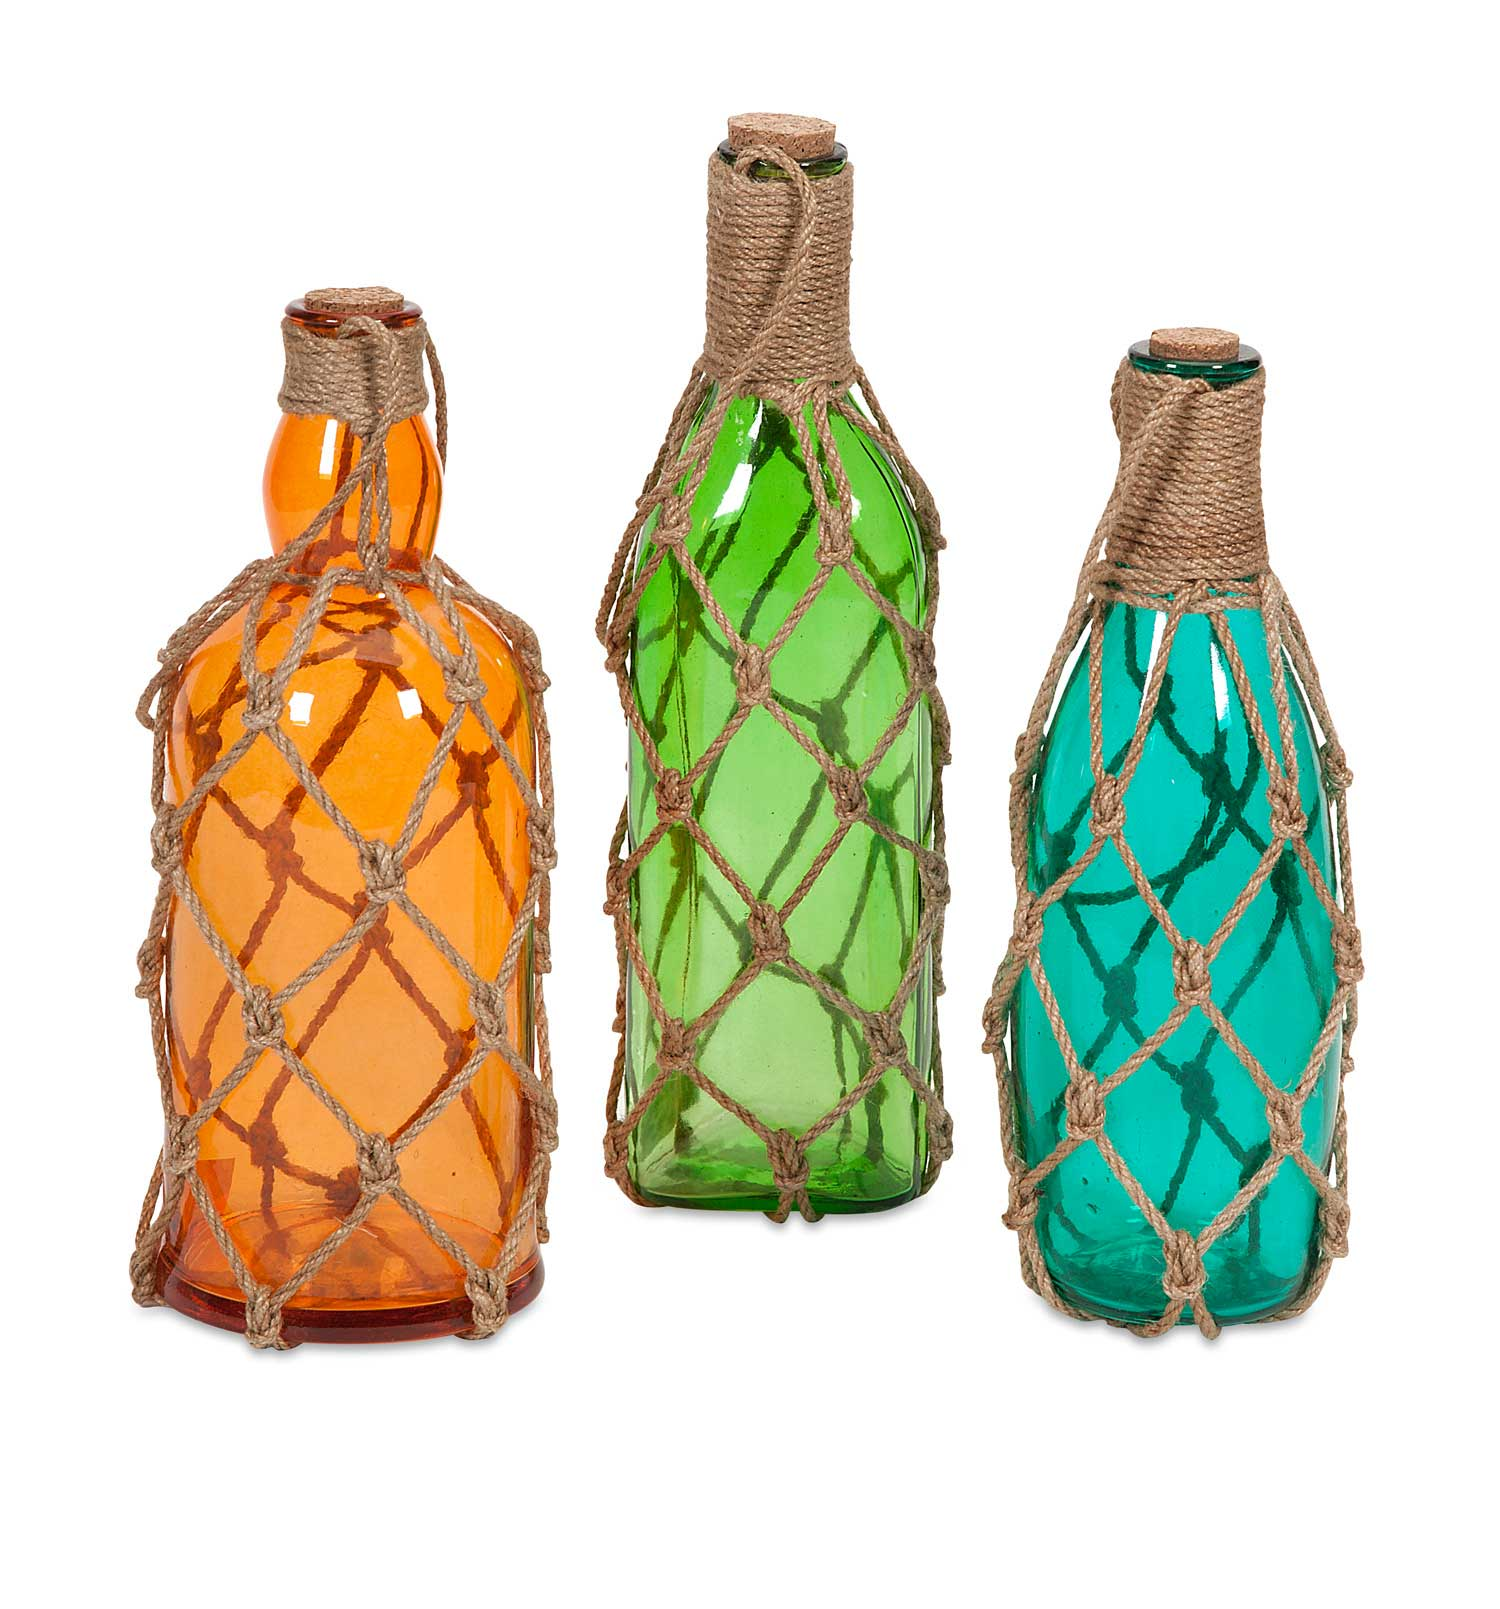 imax williams glass bottles with jute hangers